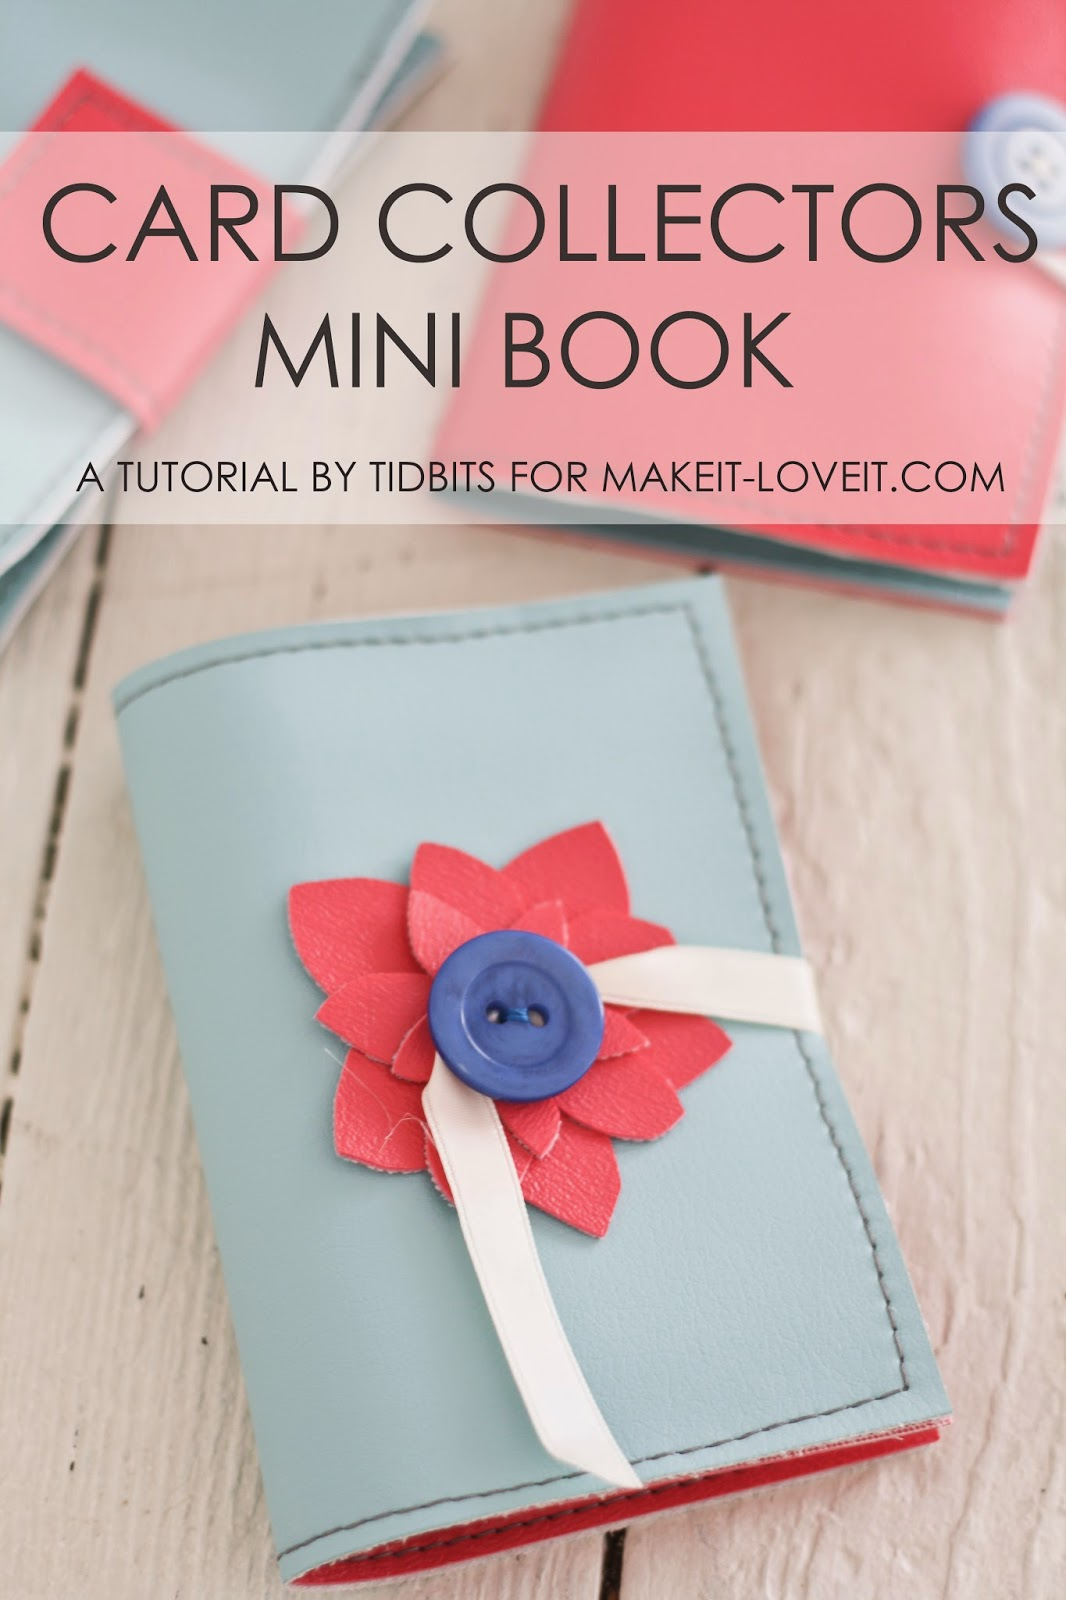 Mini Books for Card Collections (or photos, business cards, etc) --- Make It and Love It